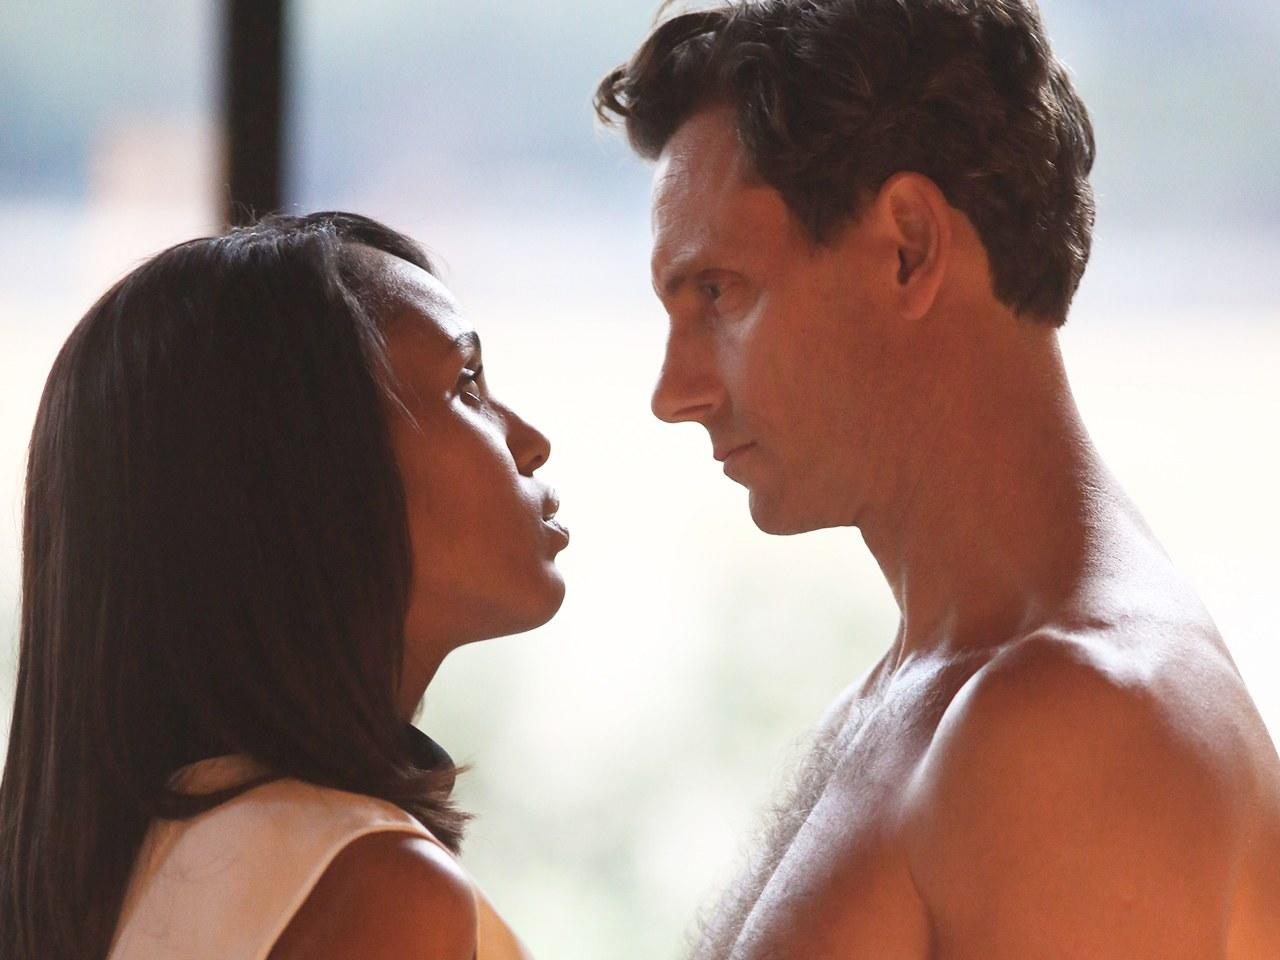 15 Netflix Shows With the Hottest Sex Scenes You Need to Watch